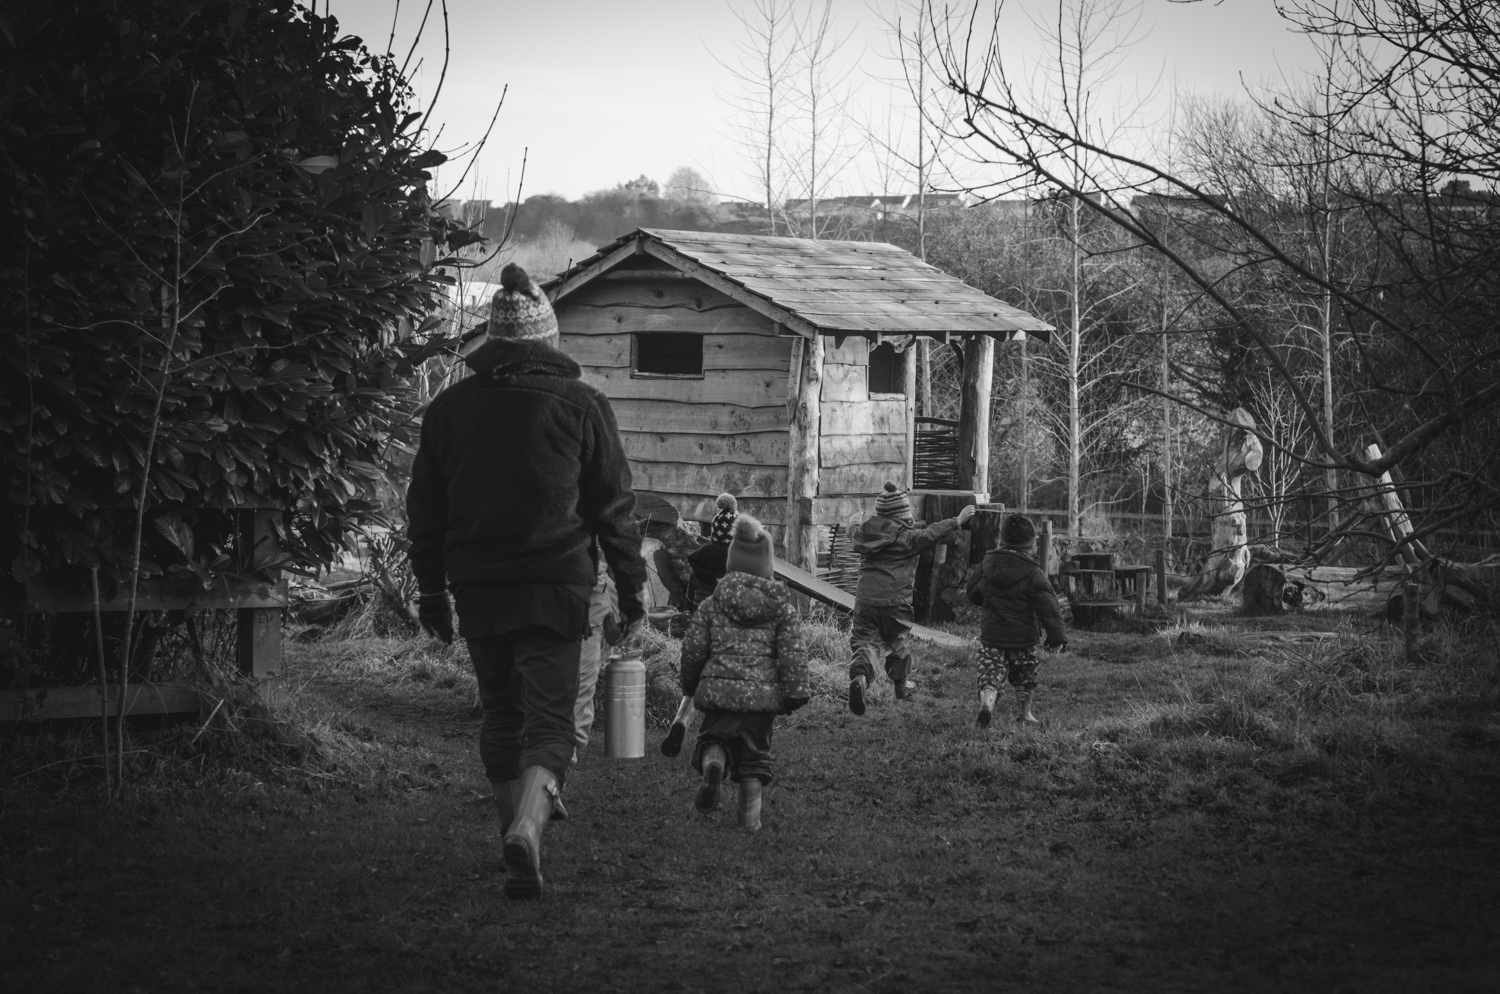 Letting the children lead the way. Finding their own paths.